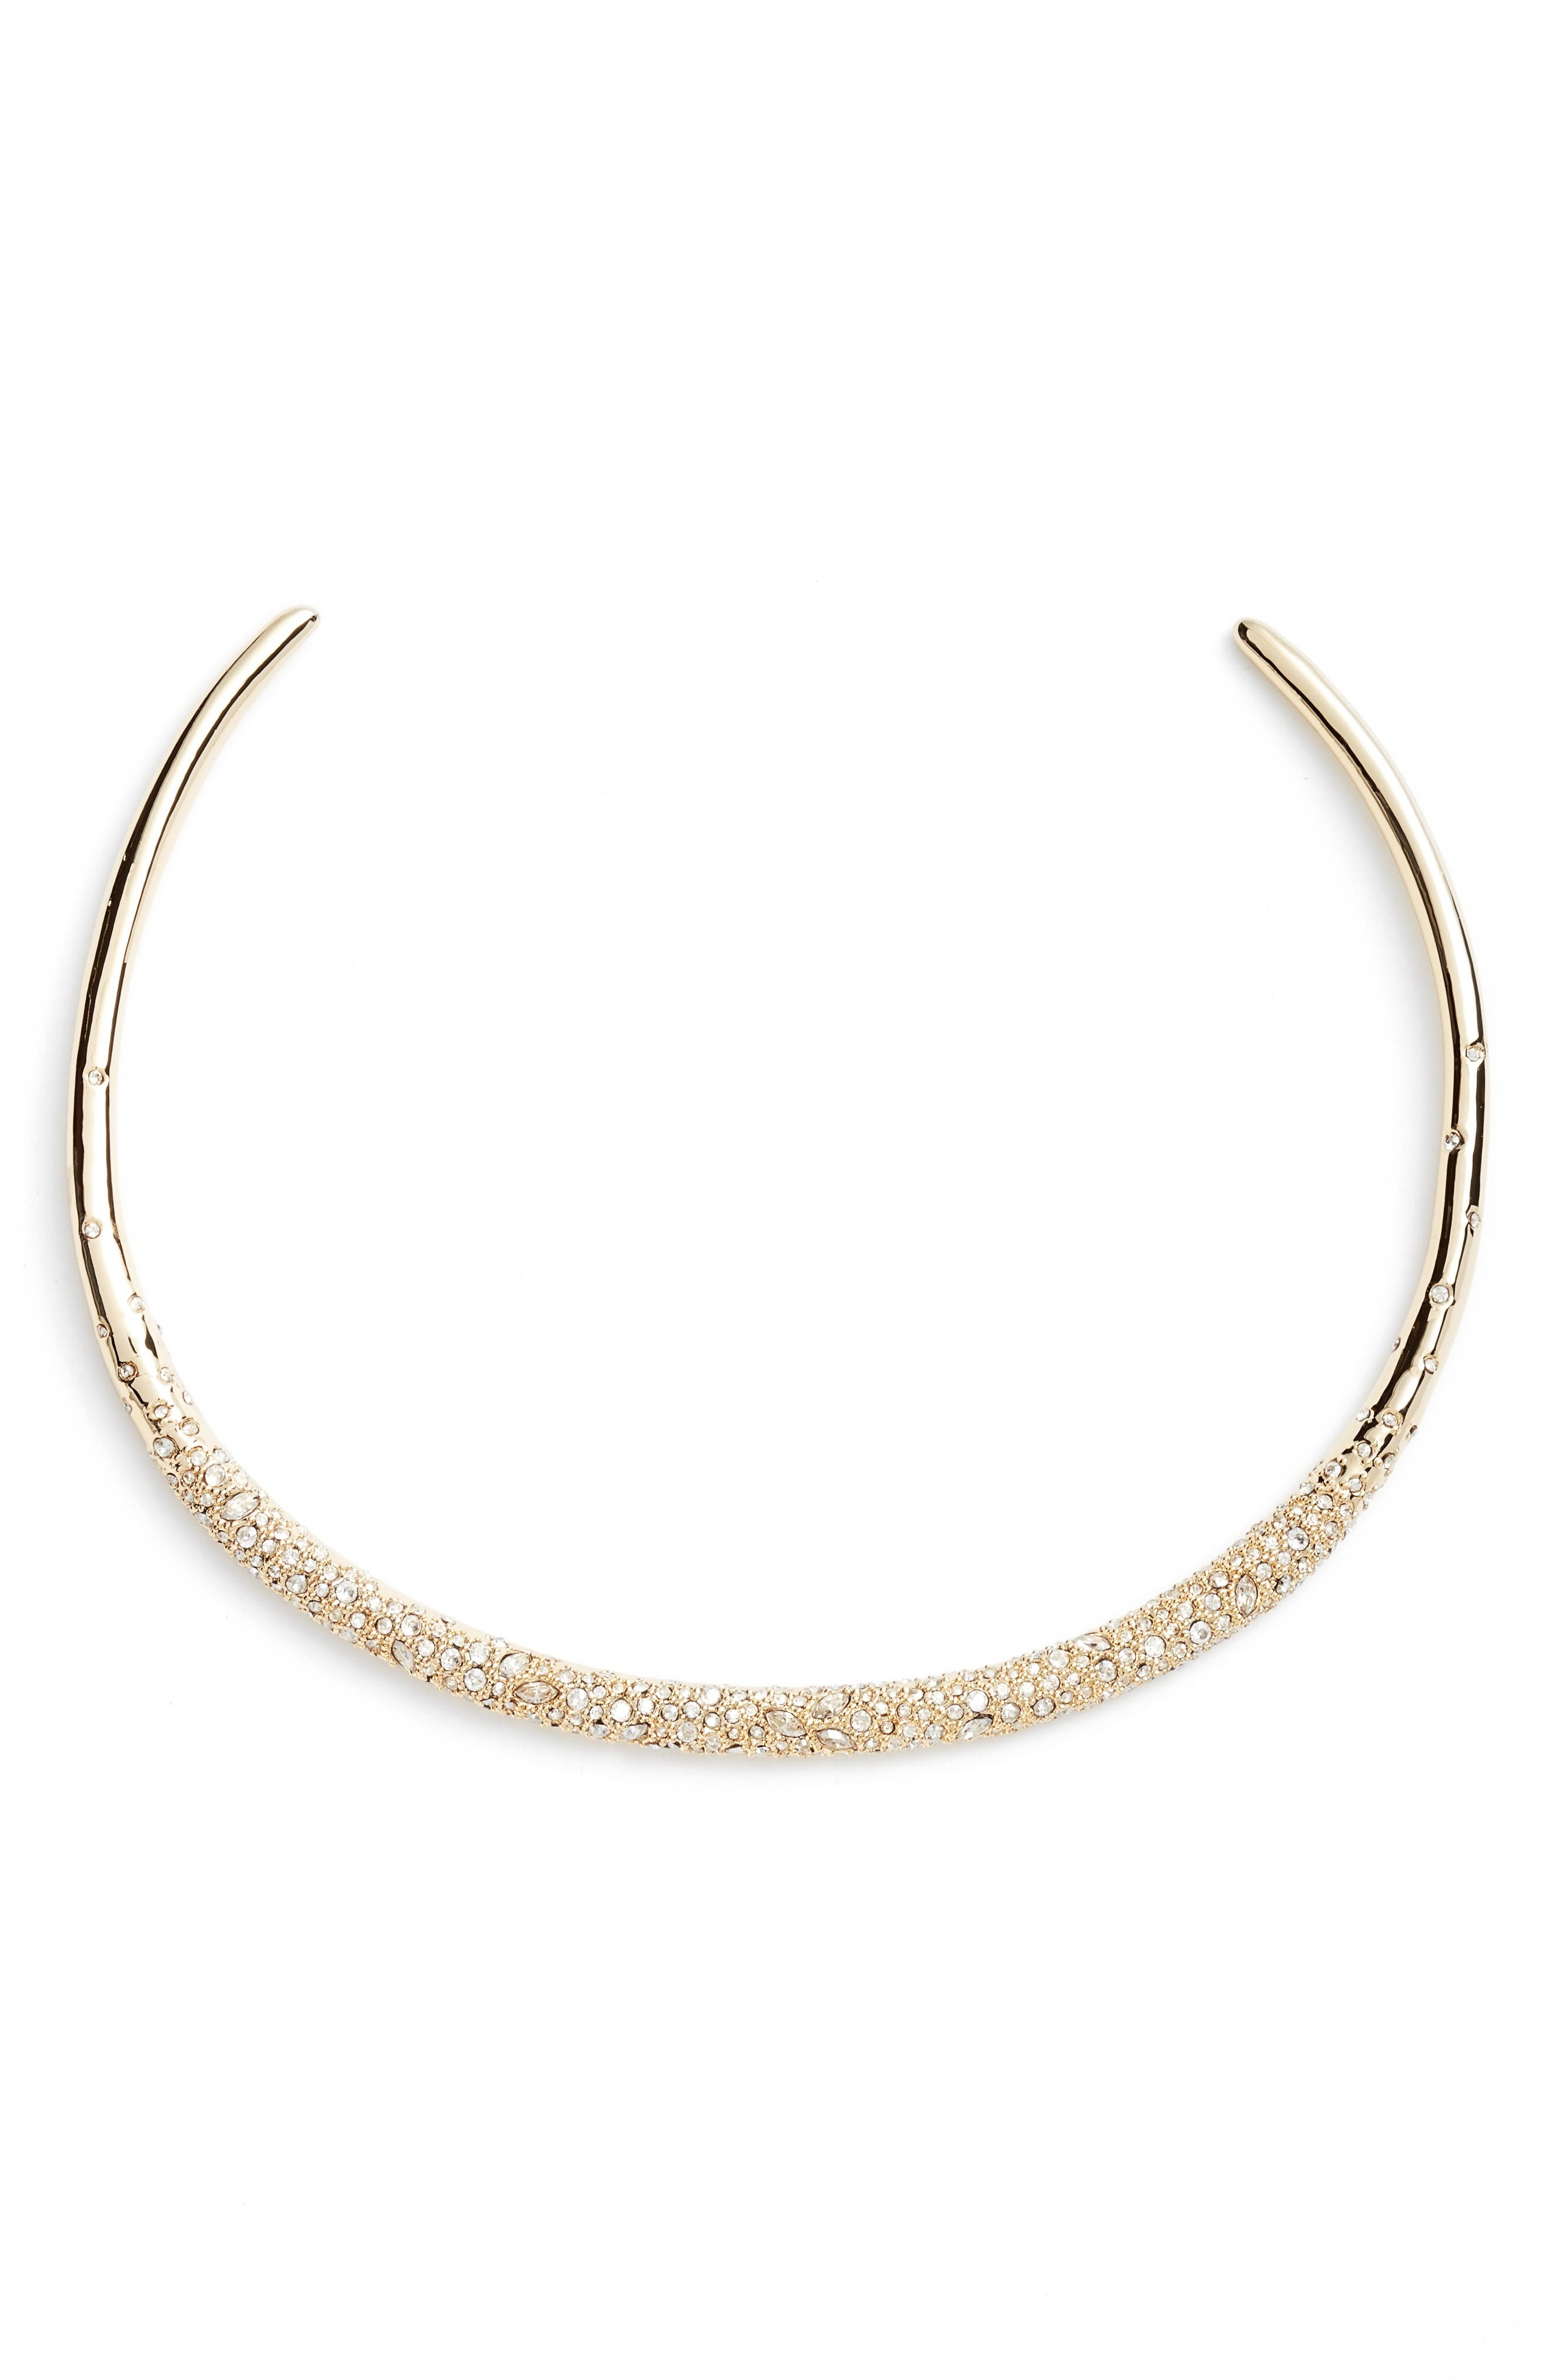 Main Image - Alexis Bittar Thin Encrusted Collar Necklace